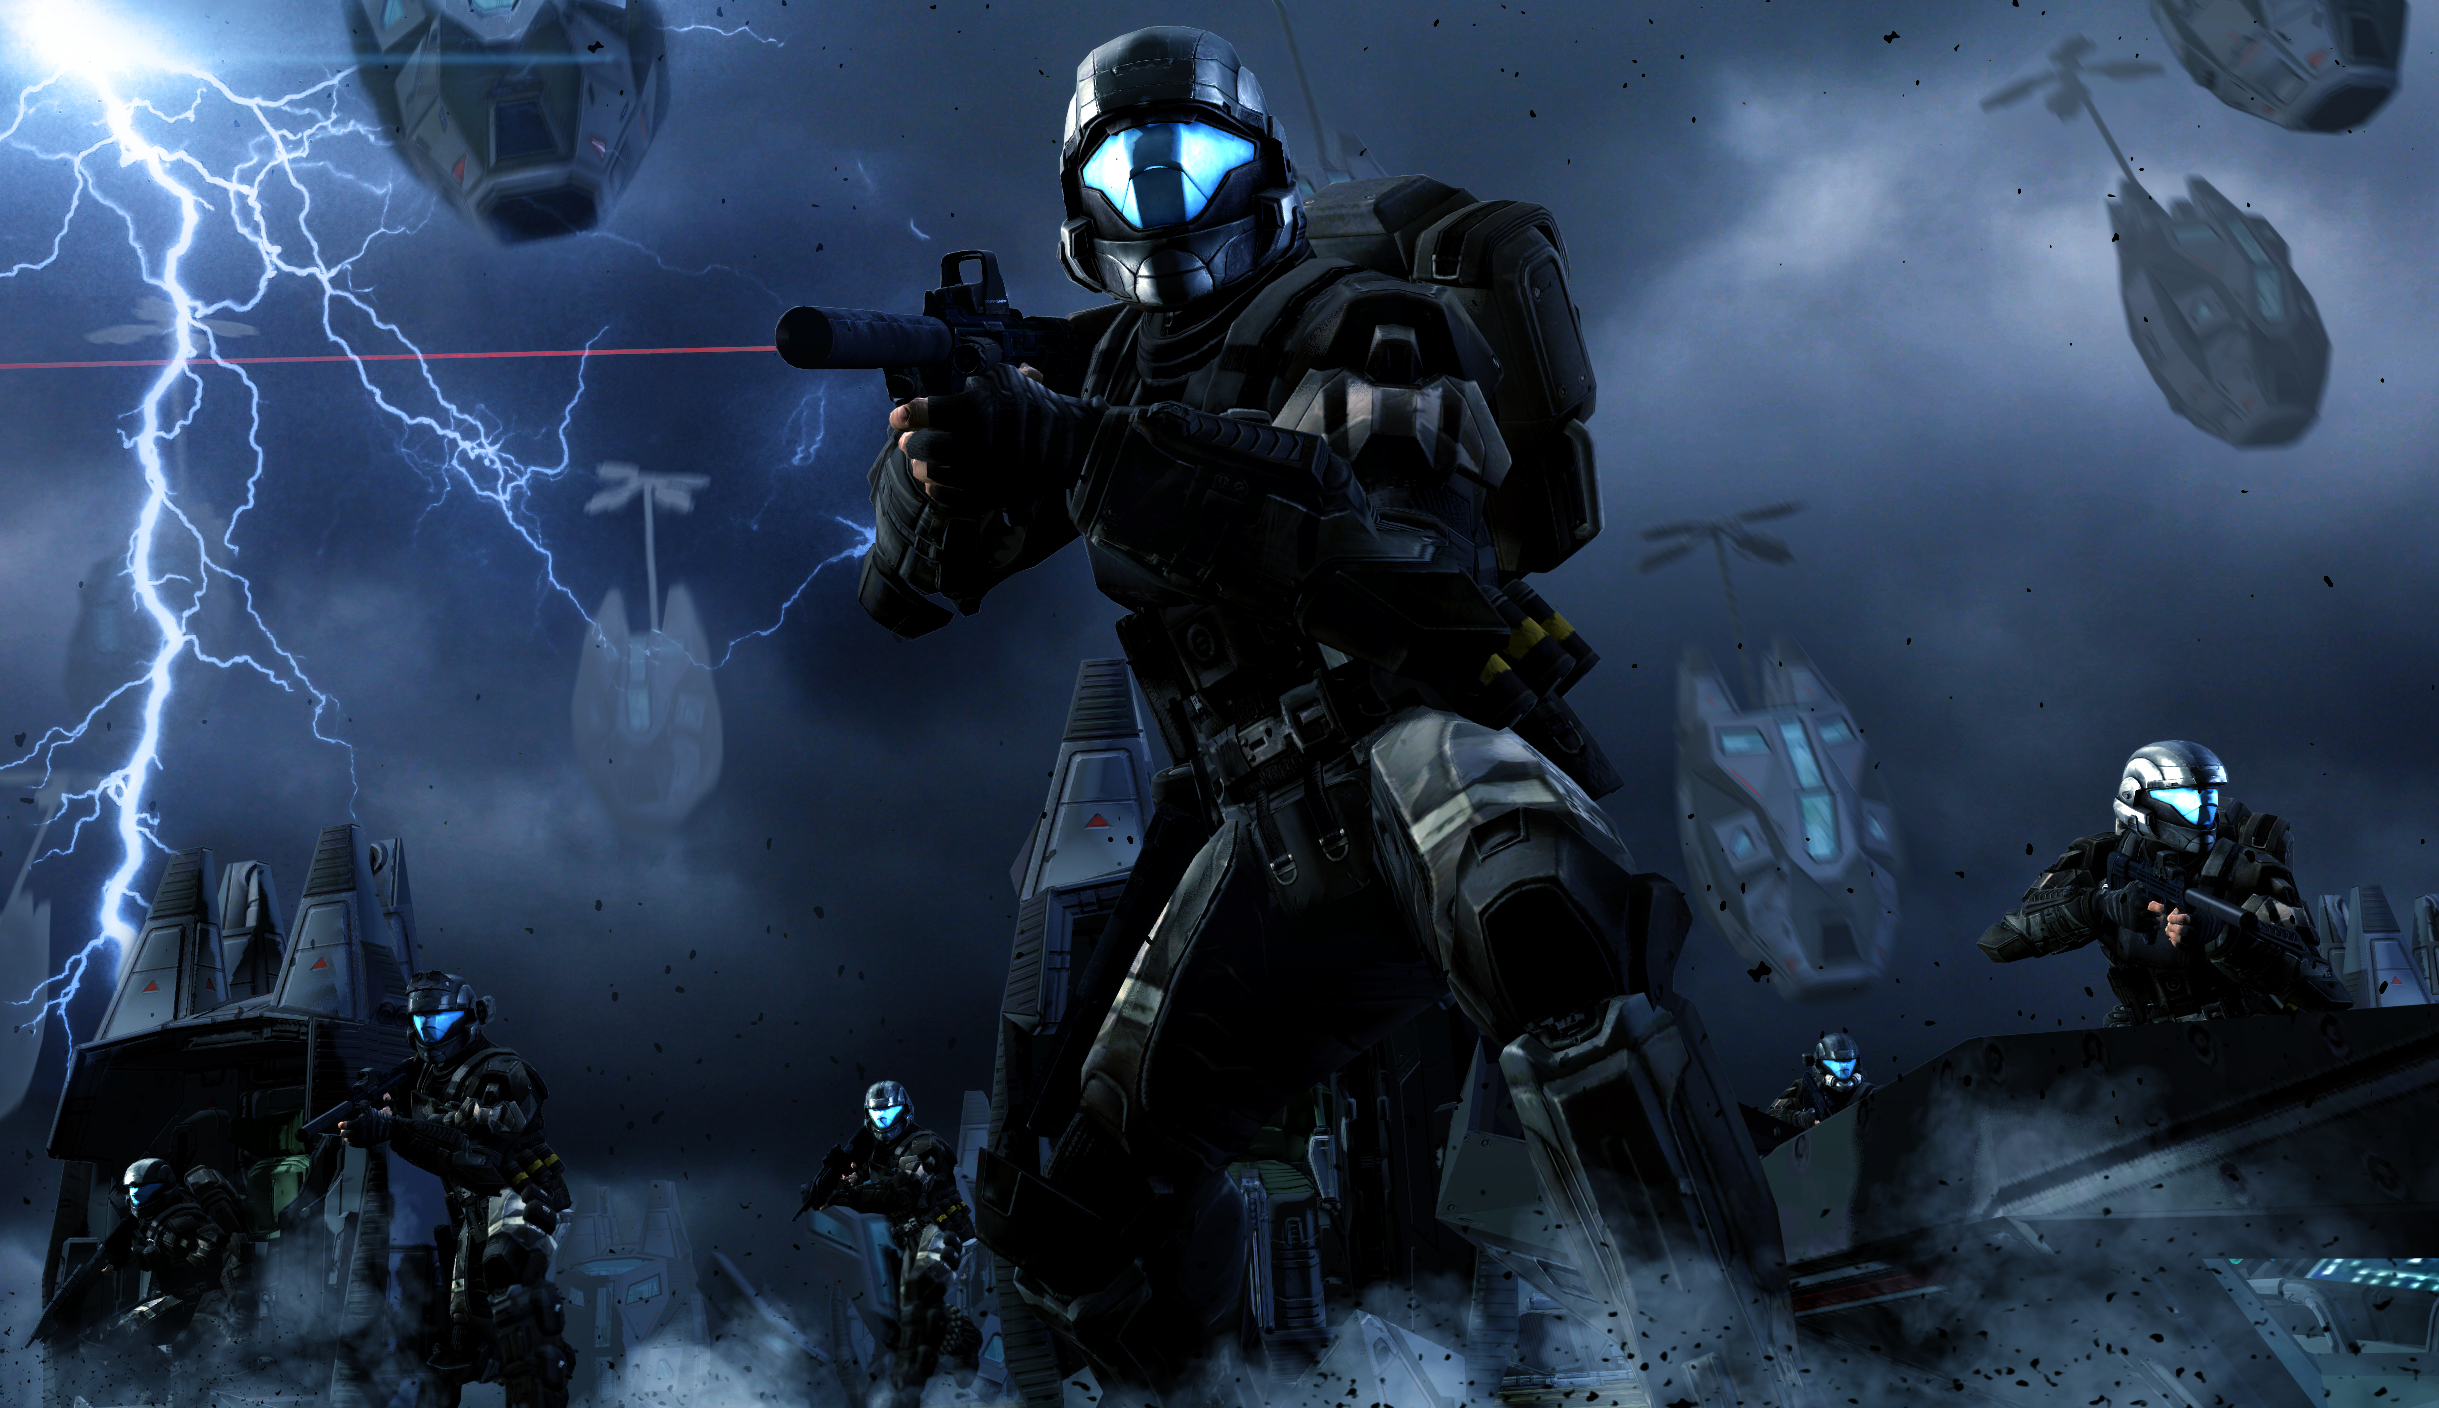 halo 3 odst iphone wallpaper